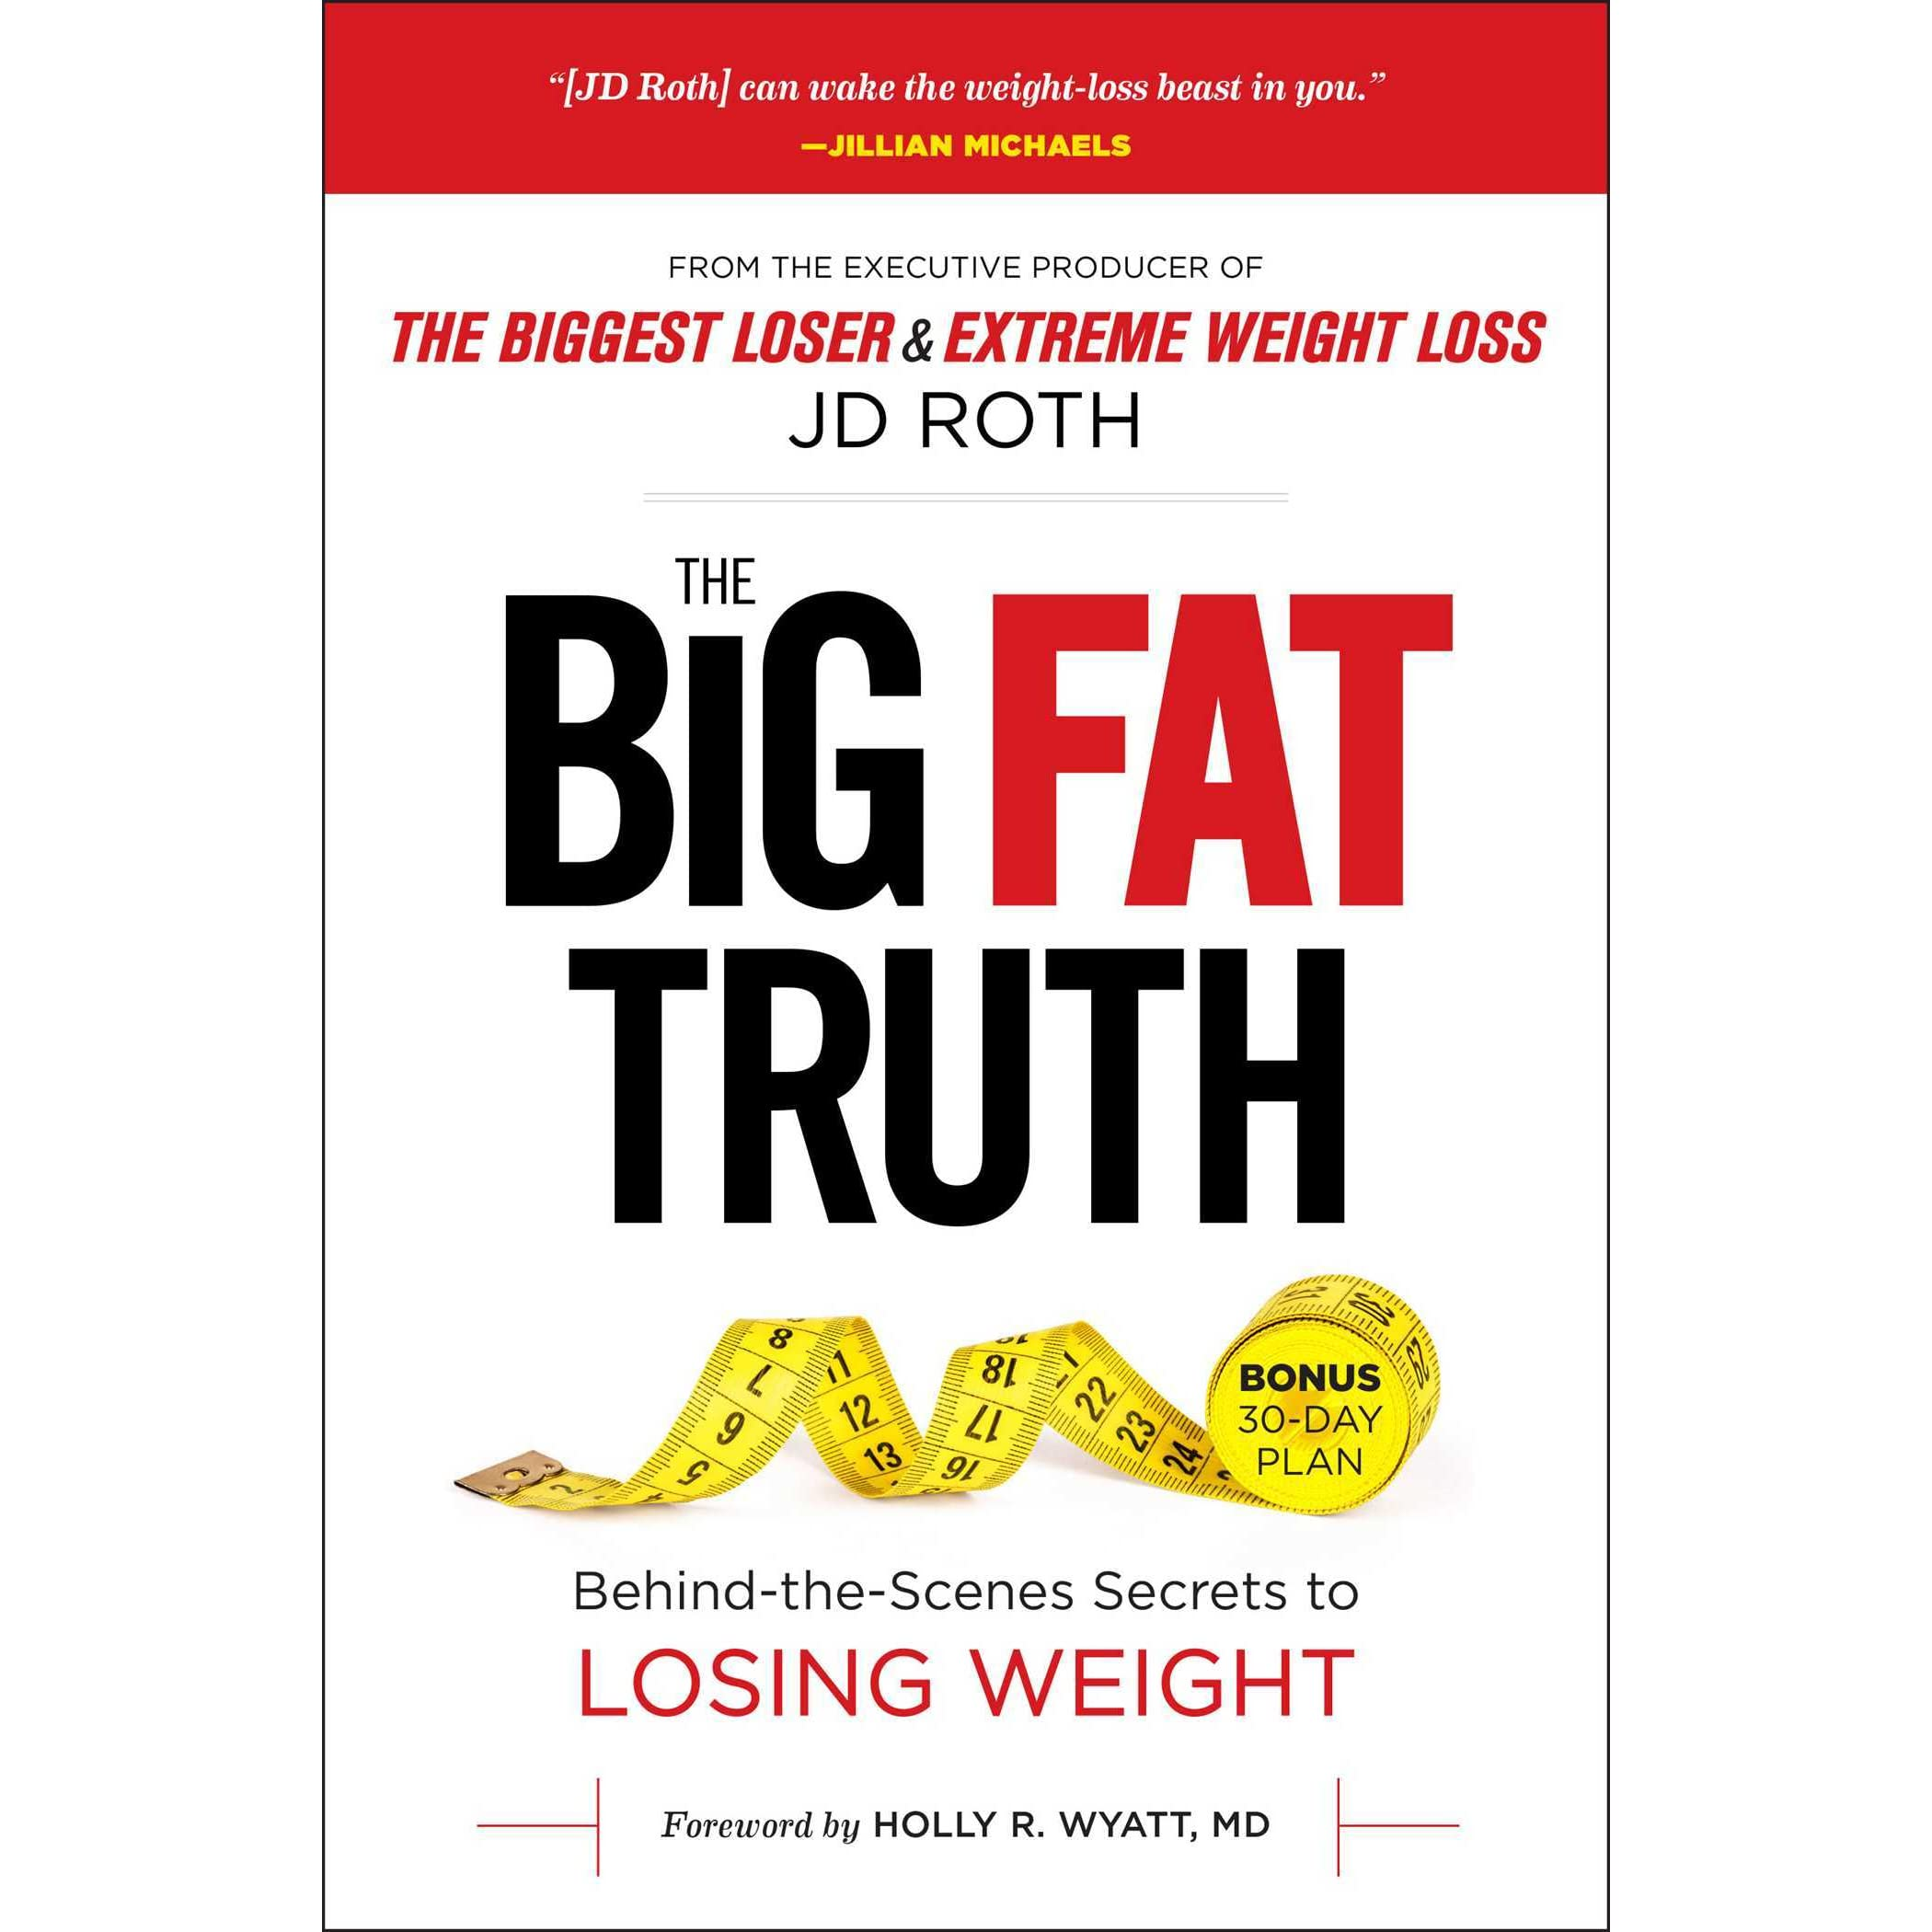 Weigh Less For Life: A Common-sense Approach to Weight Loss (The Fat Chance Series Book 1)